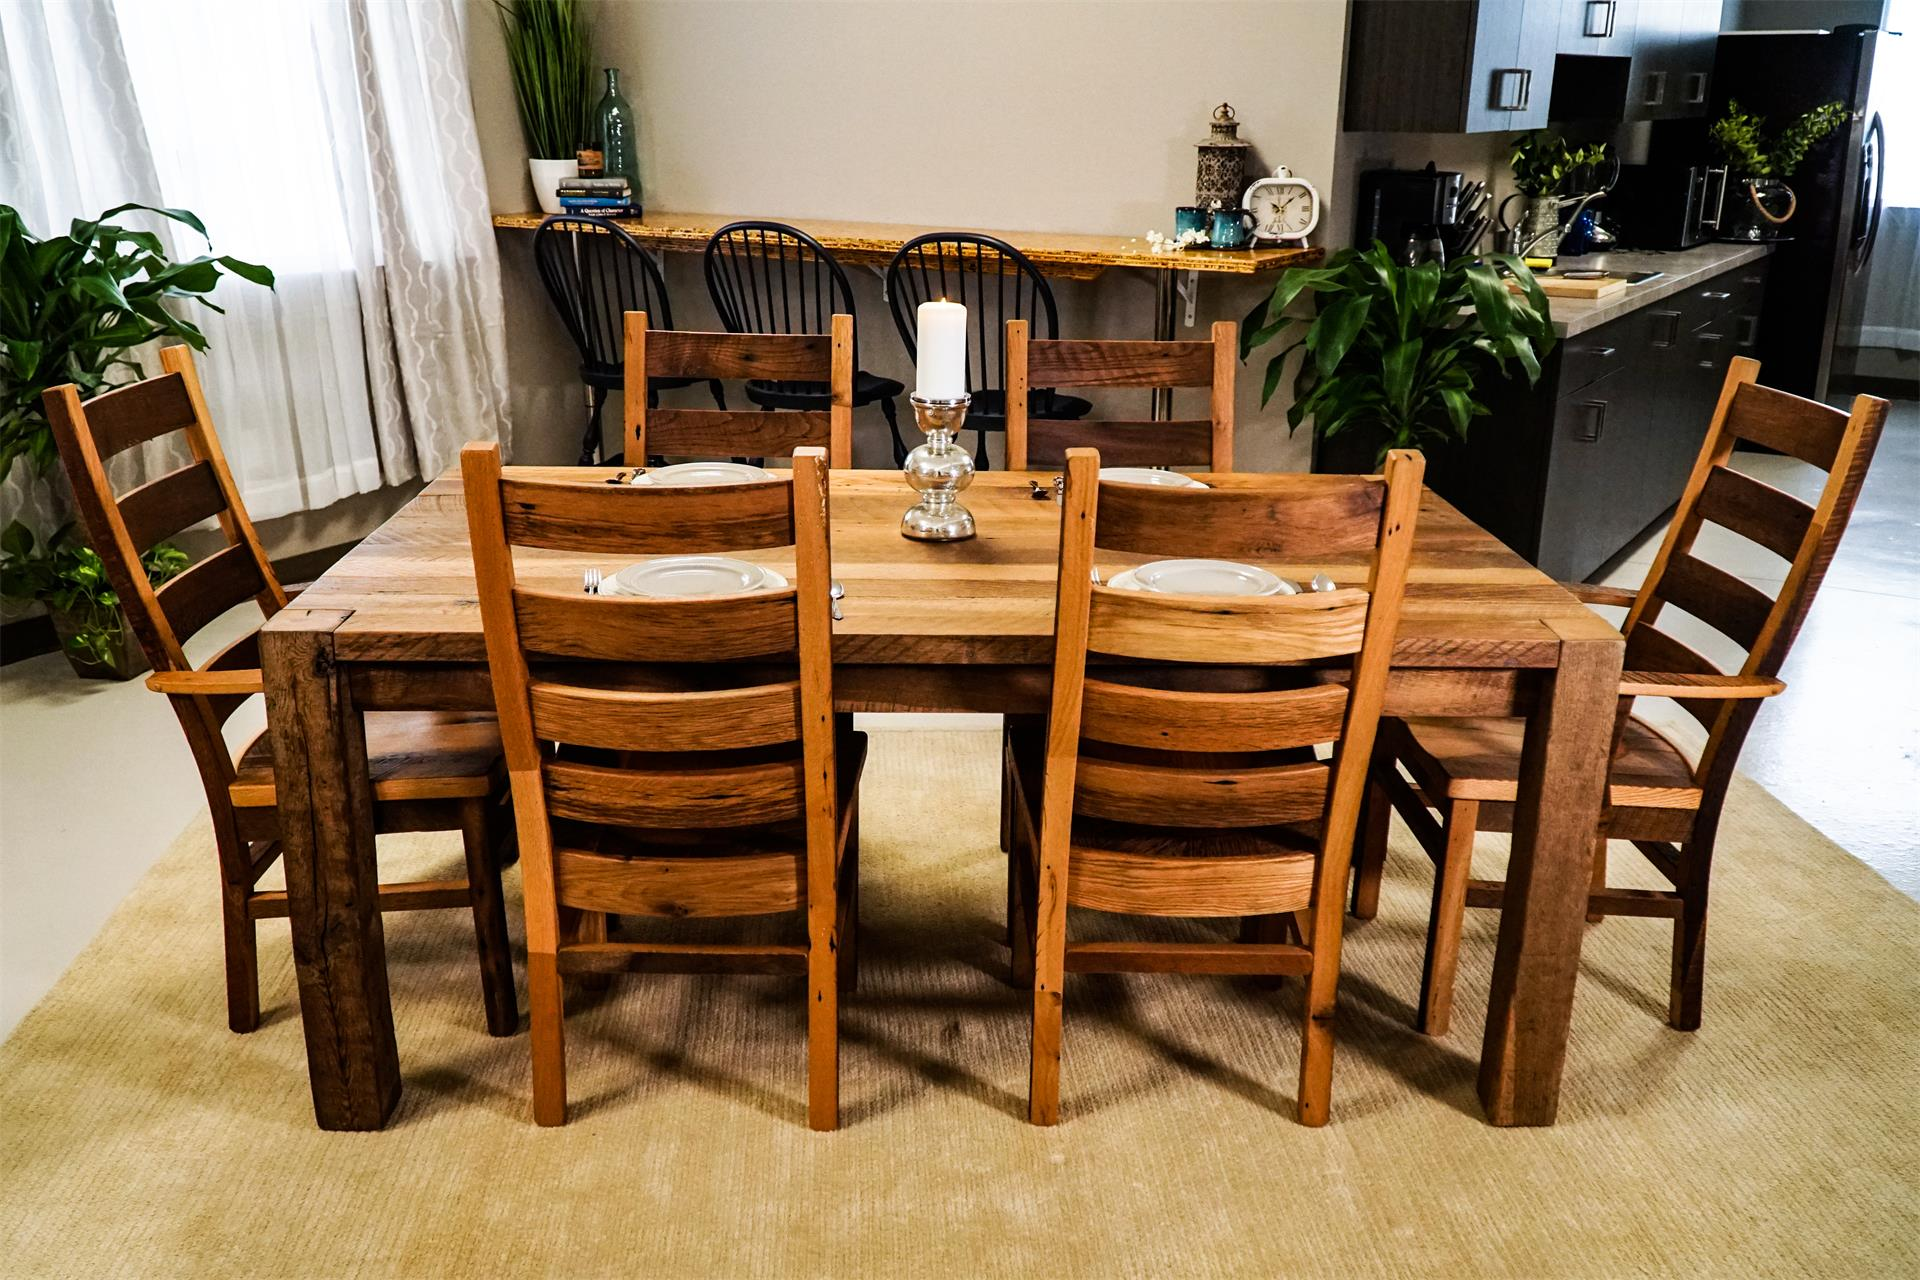 Timber Ridge Reclaimed Barn Wood Dining Table